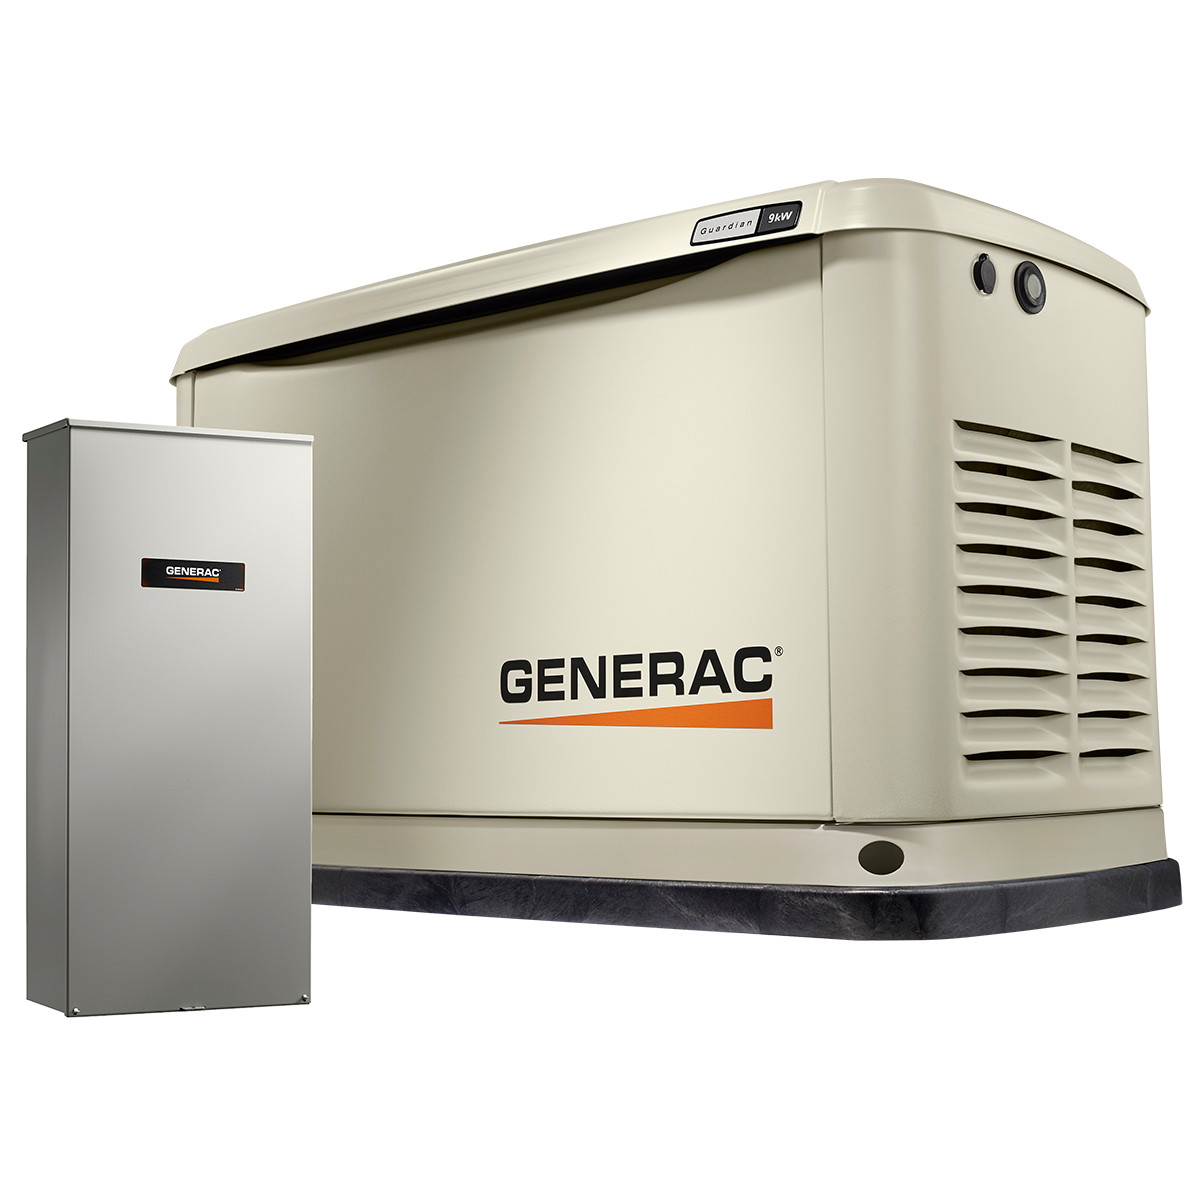 generac guardian 7030 9kw generator with wi-fi & 100a 16-circuit transfer  switch